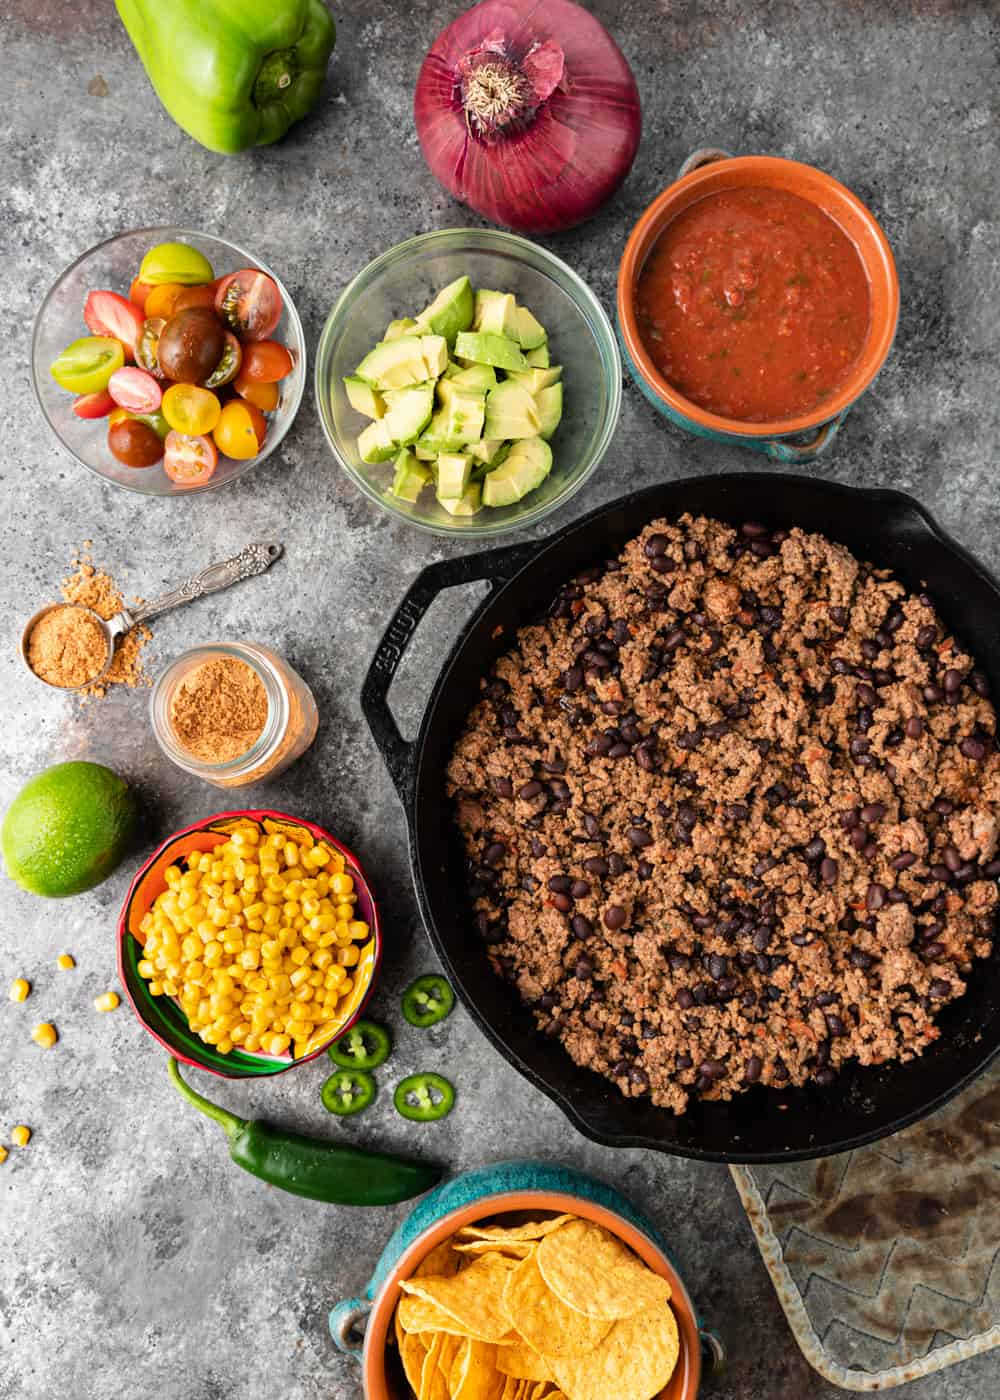 ingredients to make a taco salad